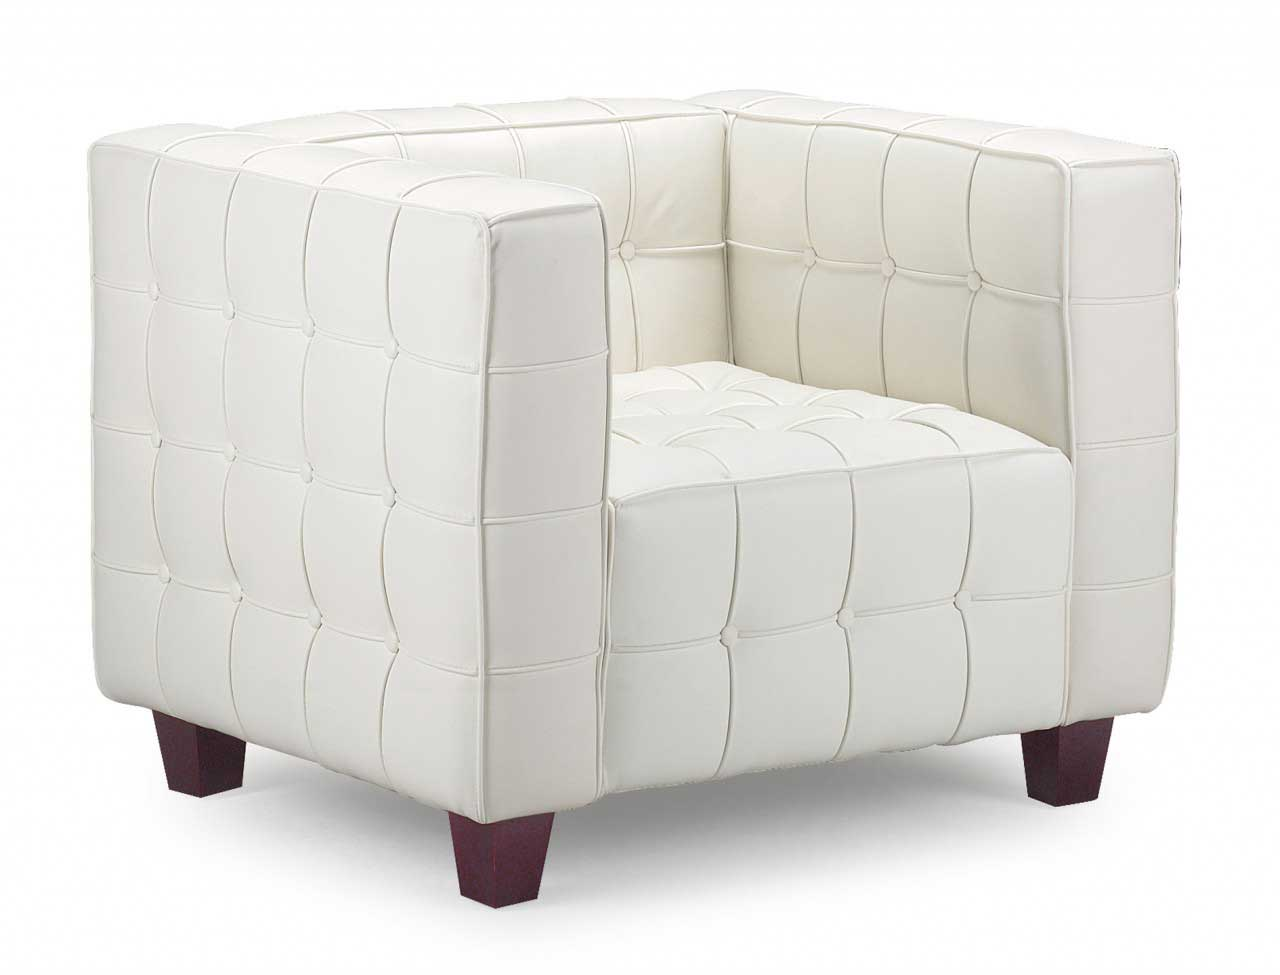 White Modern Chair Armchair Leather As Classic Office Equipment